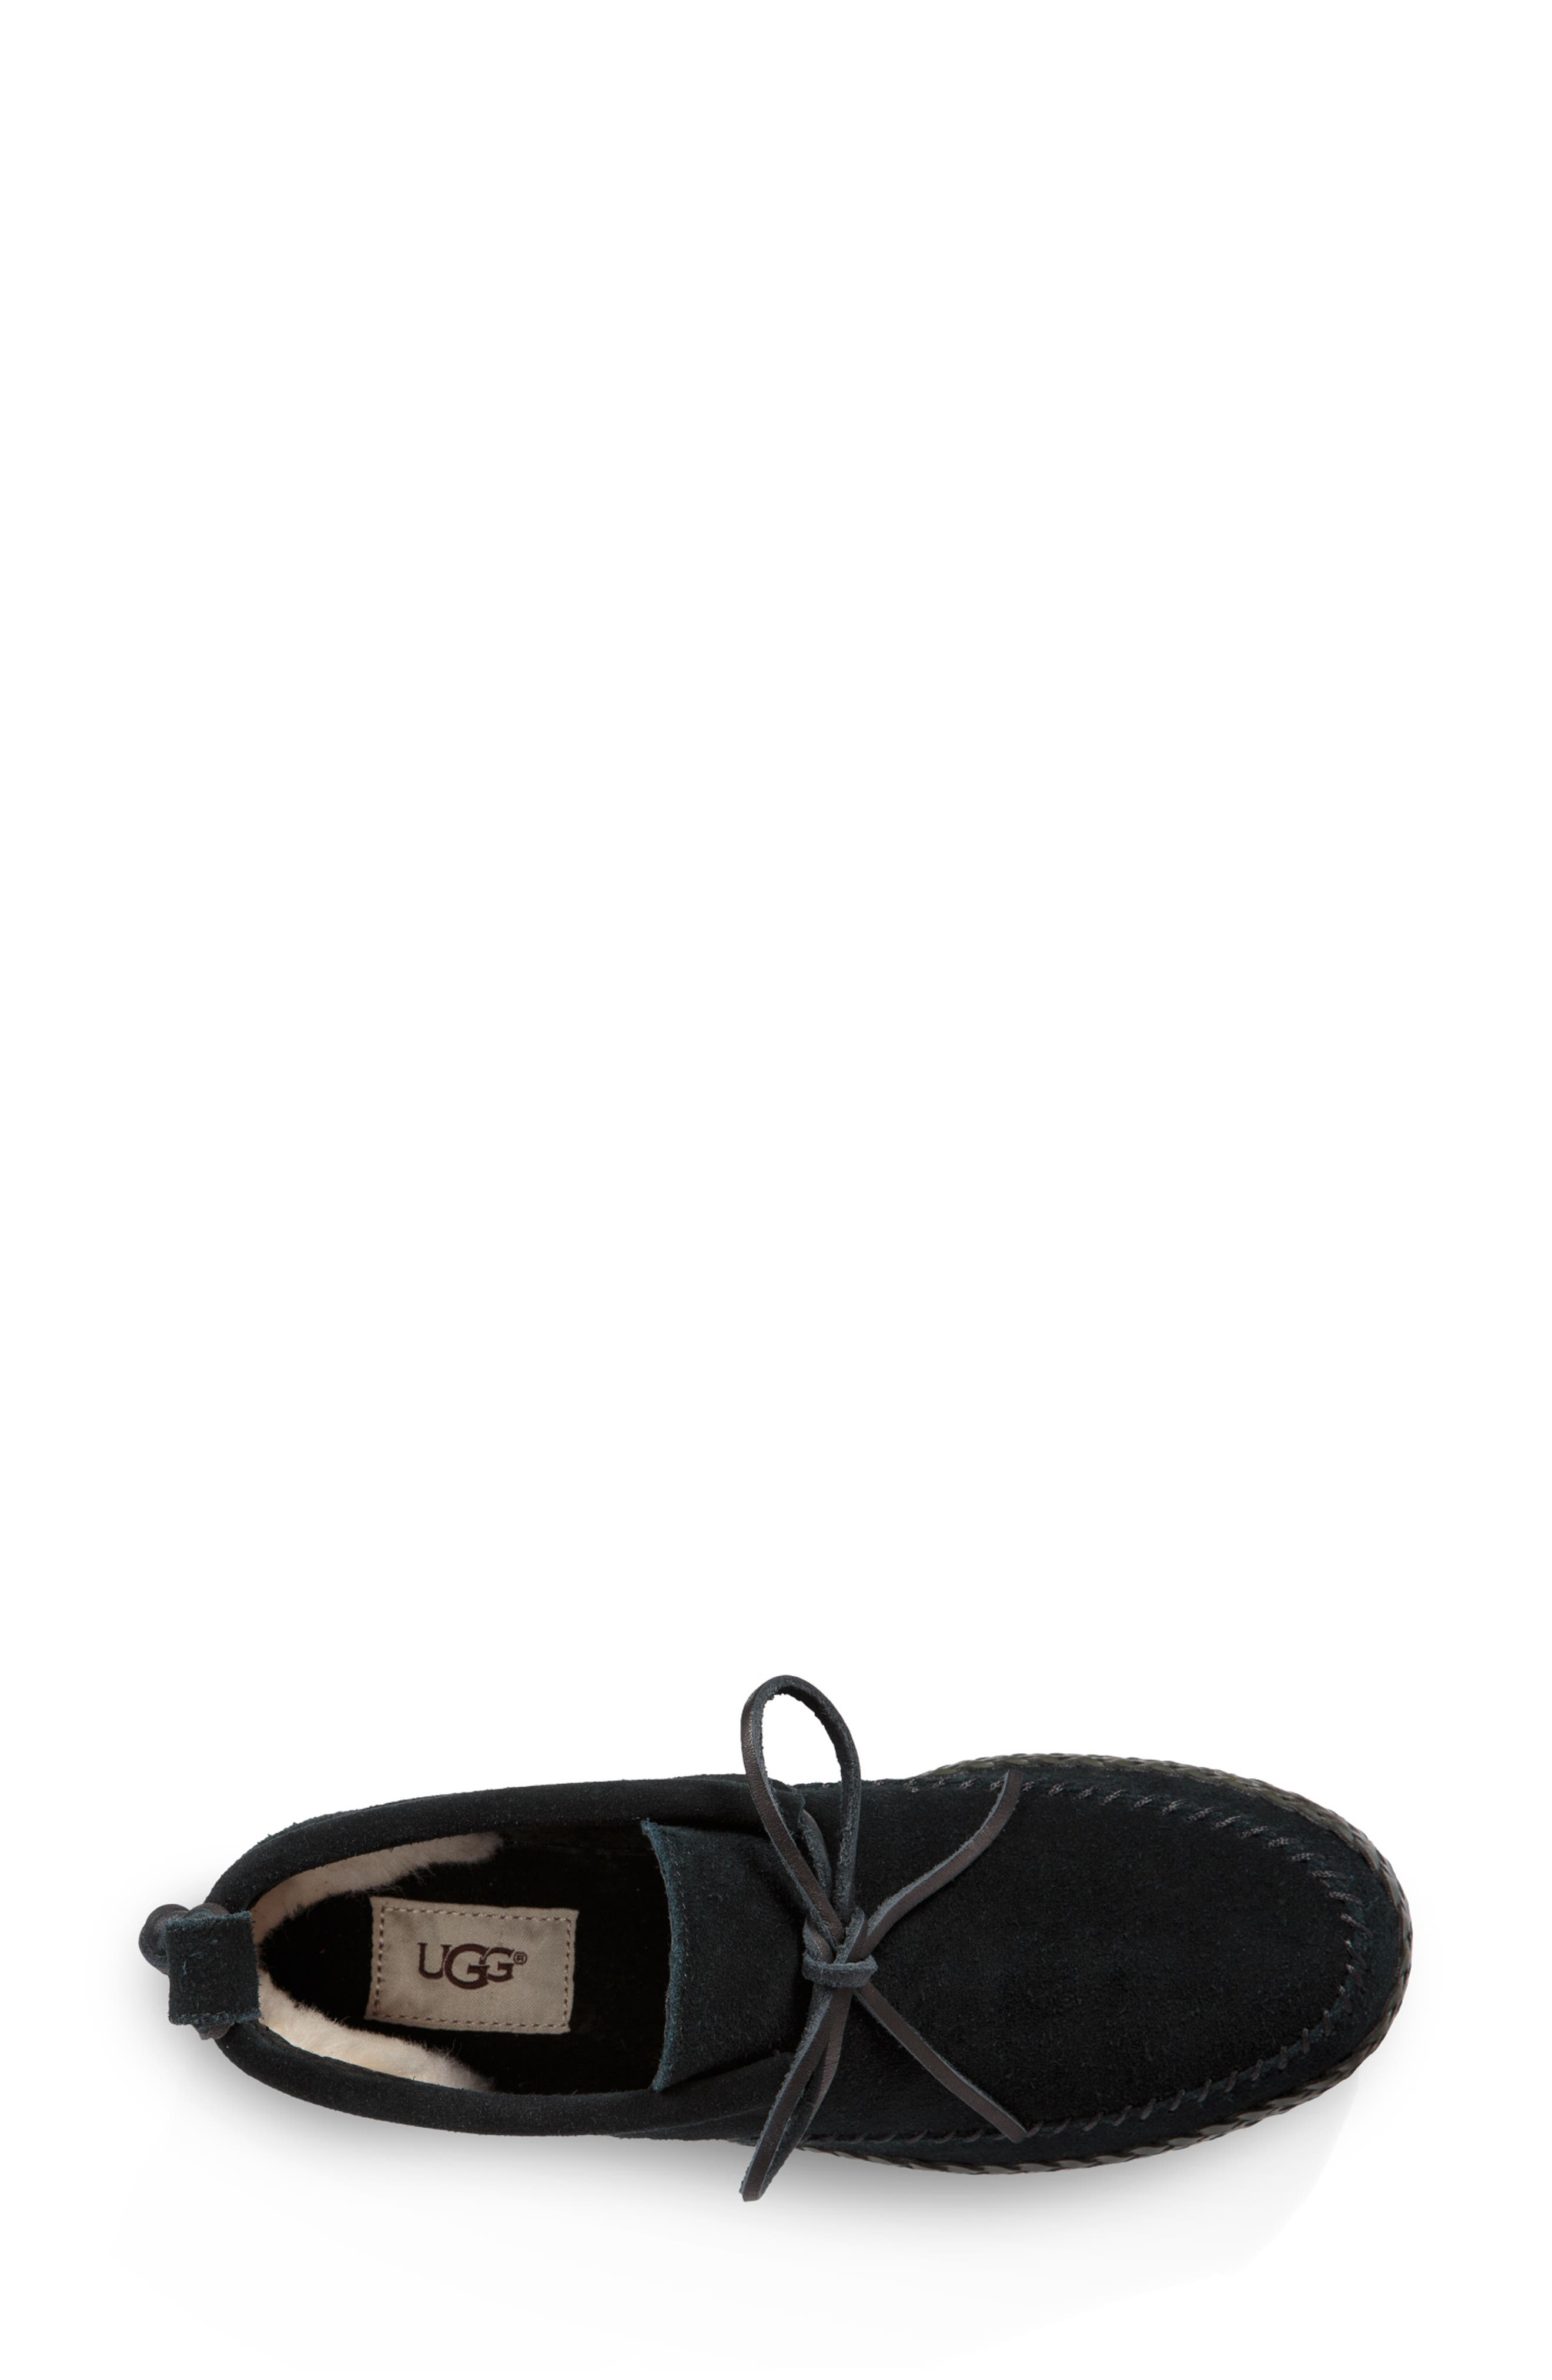 Woodlyn Moc Toe Bootie,                             Alternate thumbnail 4, color,                             BLACK LEATHER